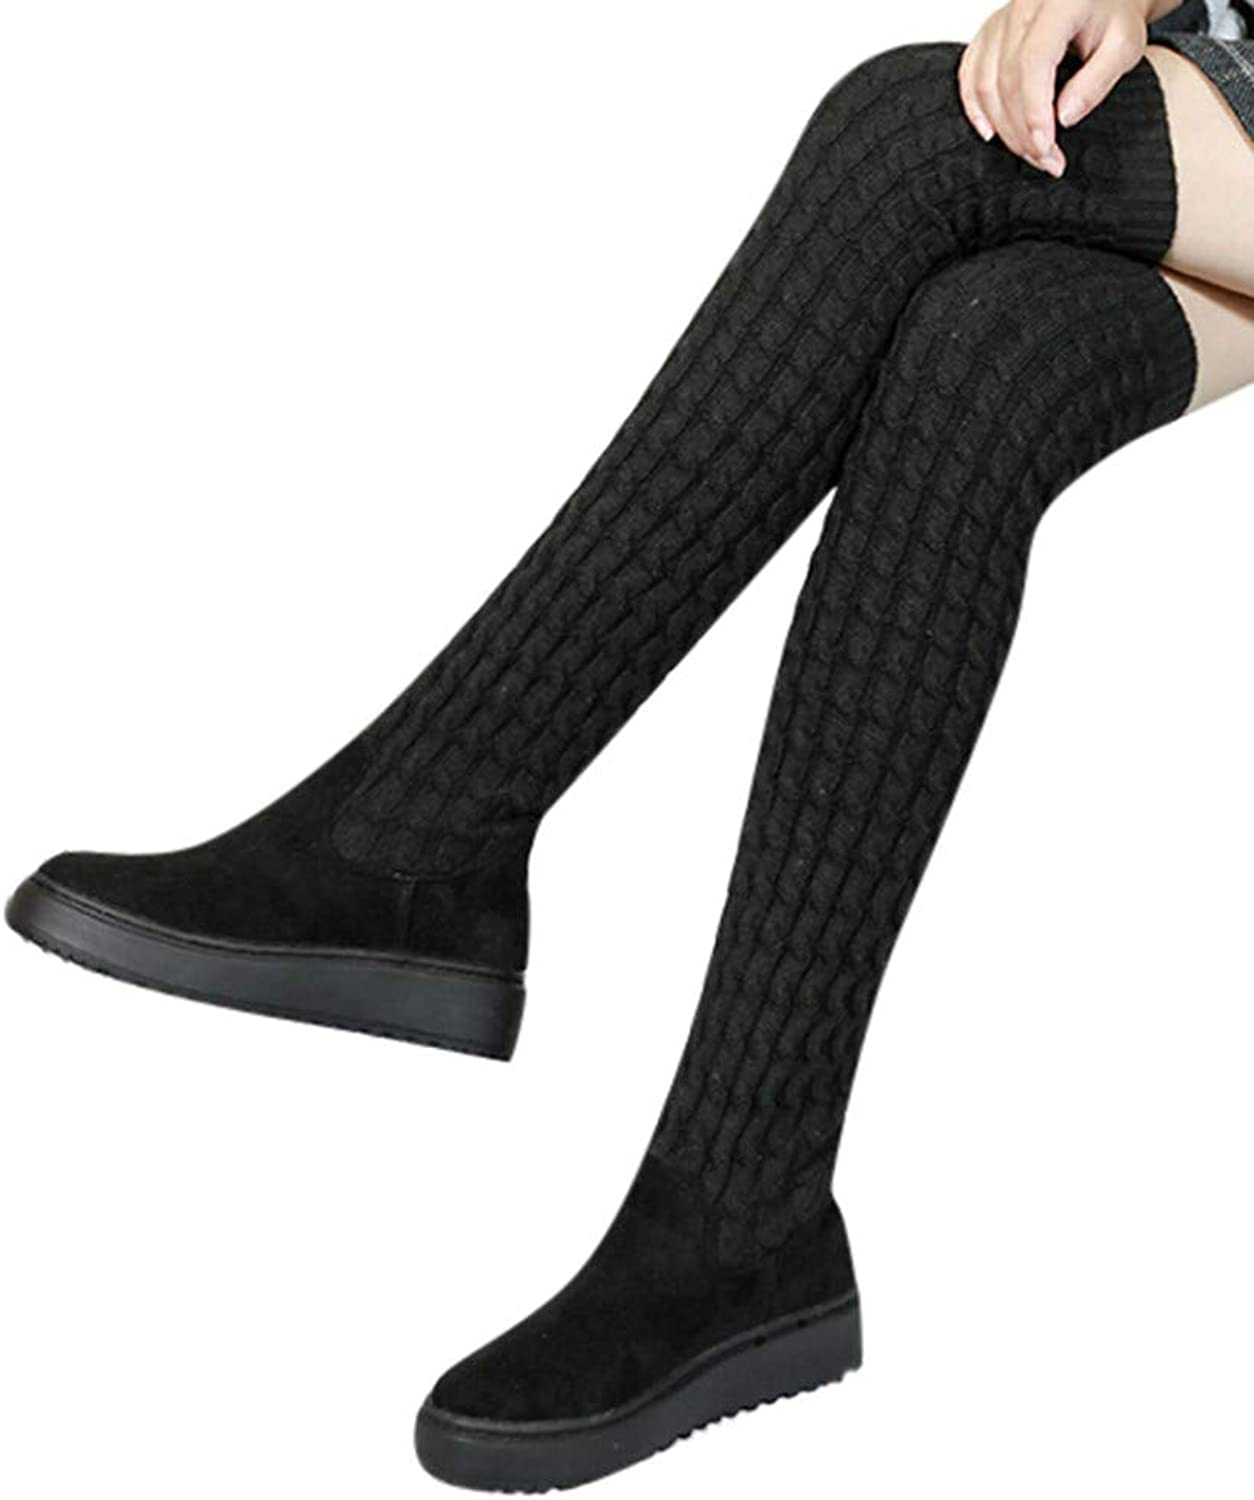 Fashion Women's Stripe Block Slip-On Round-Toe Thigh shoes Solid color Over-The-Knee Boots Snow Boots